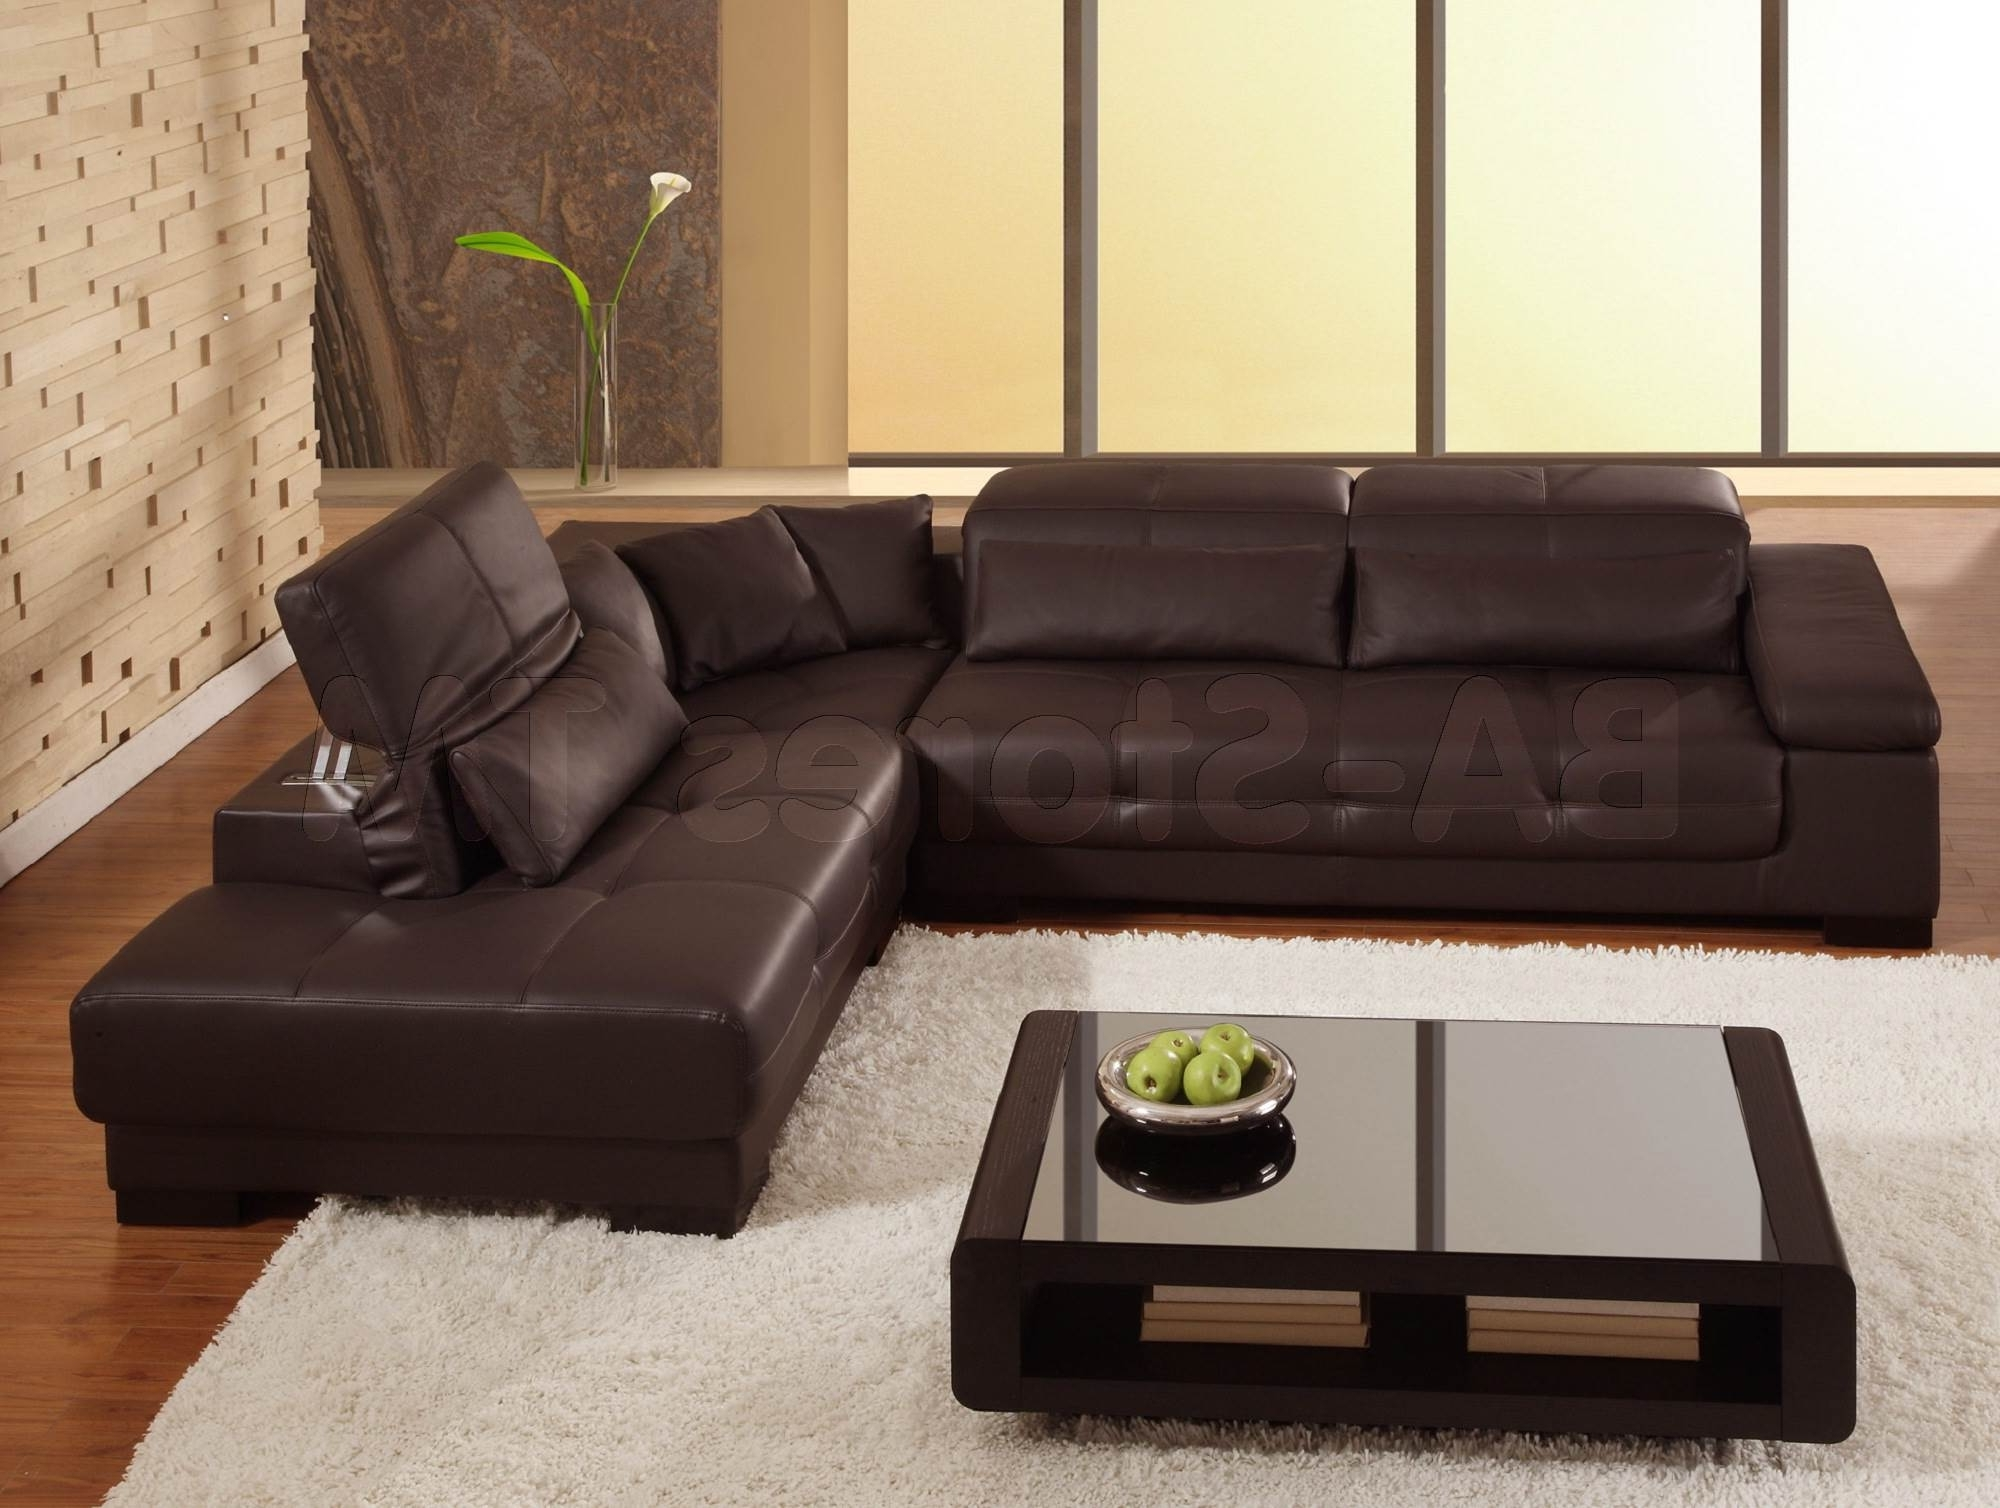 Clearance Sectional Sofas Within Most Recently Released Sectional Sofa Design: Top Rate Sectional Sofas Clearance Leather (View 10 of 15)